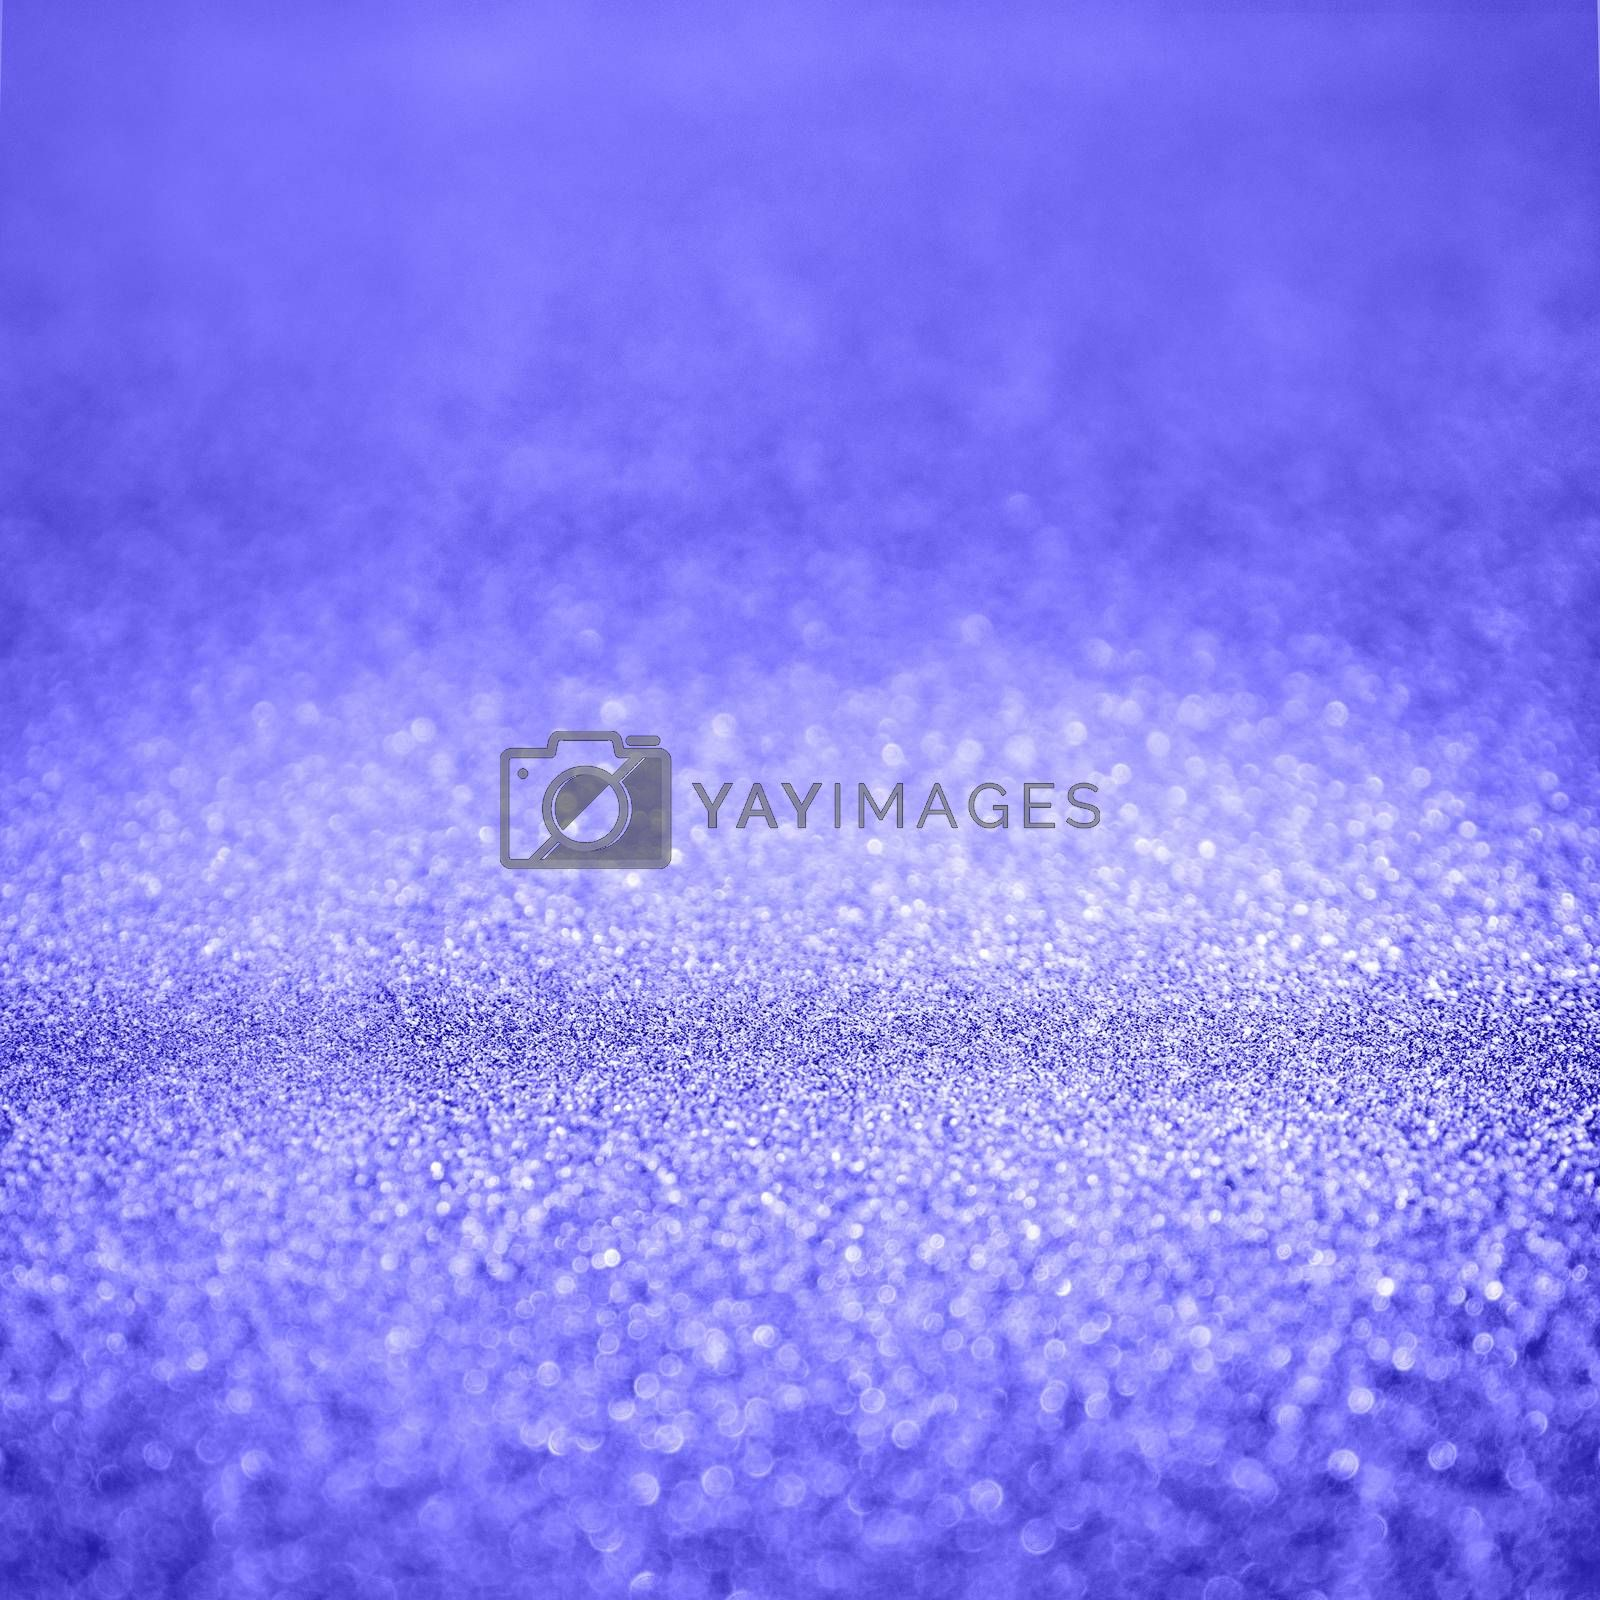 Violet abstract background with shiny glitter. Purple festive sparkling macro texture. Holiday backdrop with copy space.